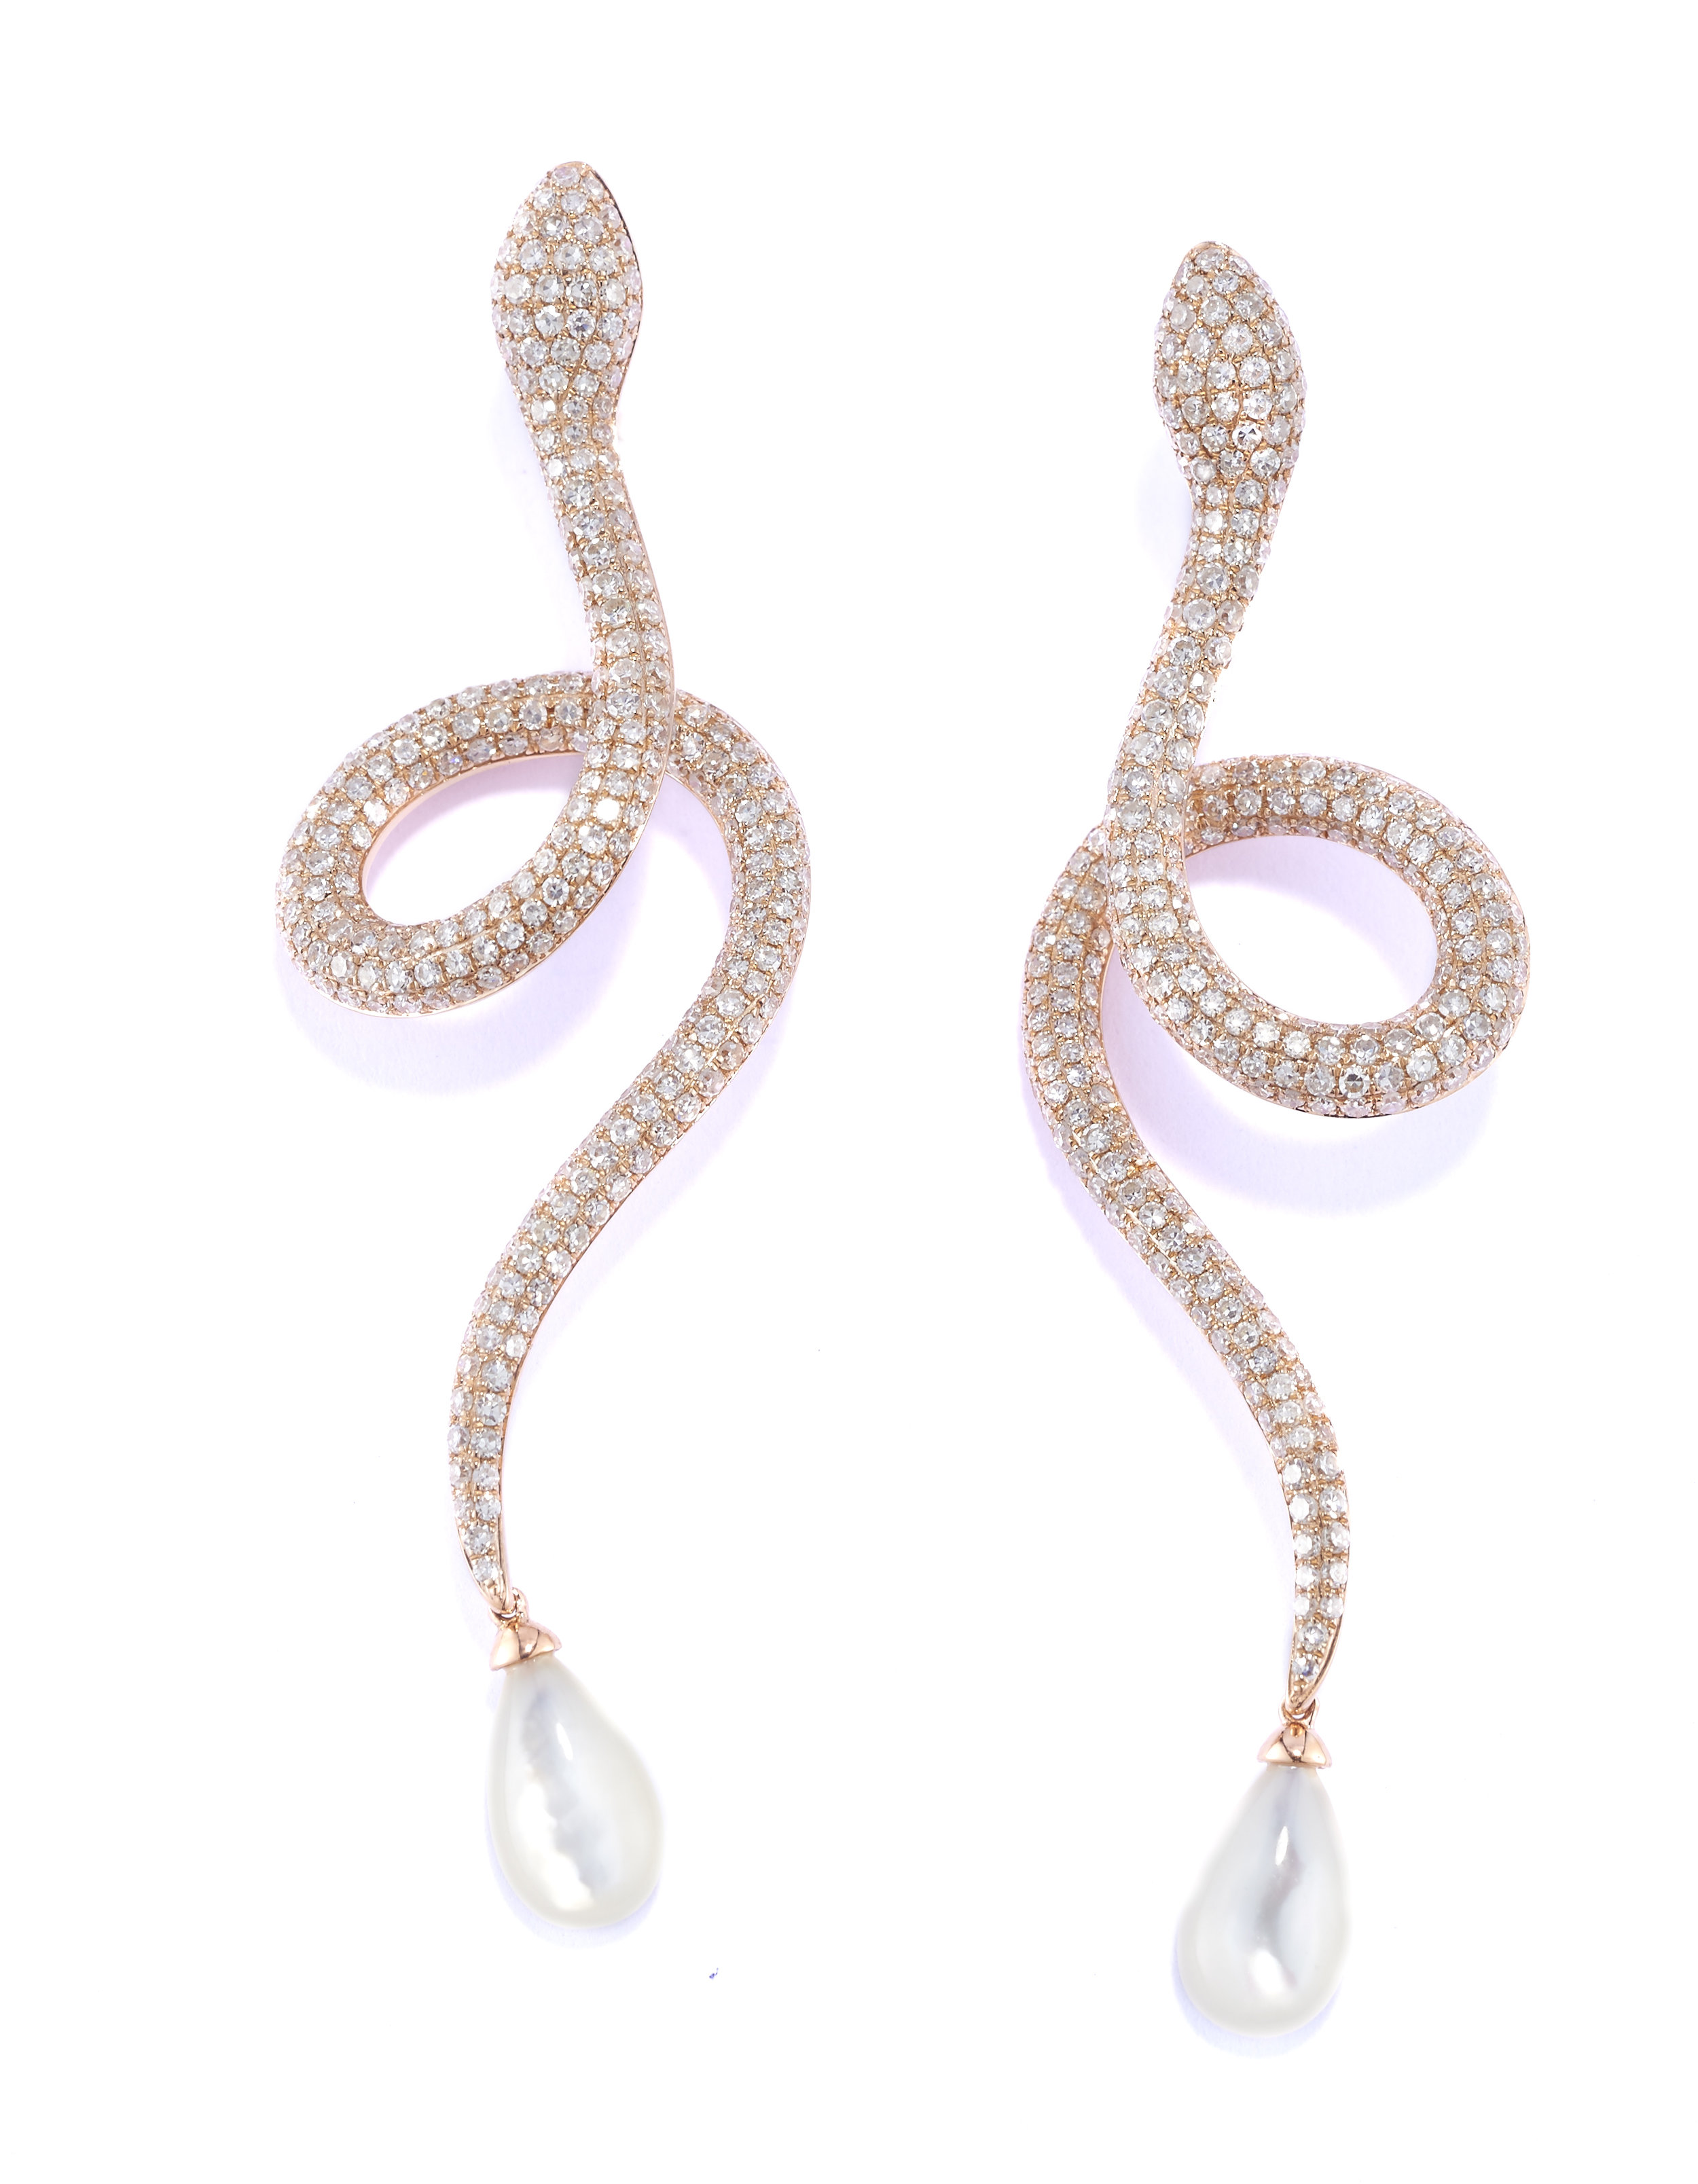 Signature pave white diamond serpents with a pearl drop, in polished 18k rose gold